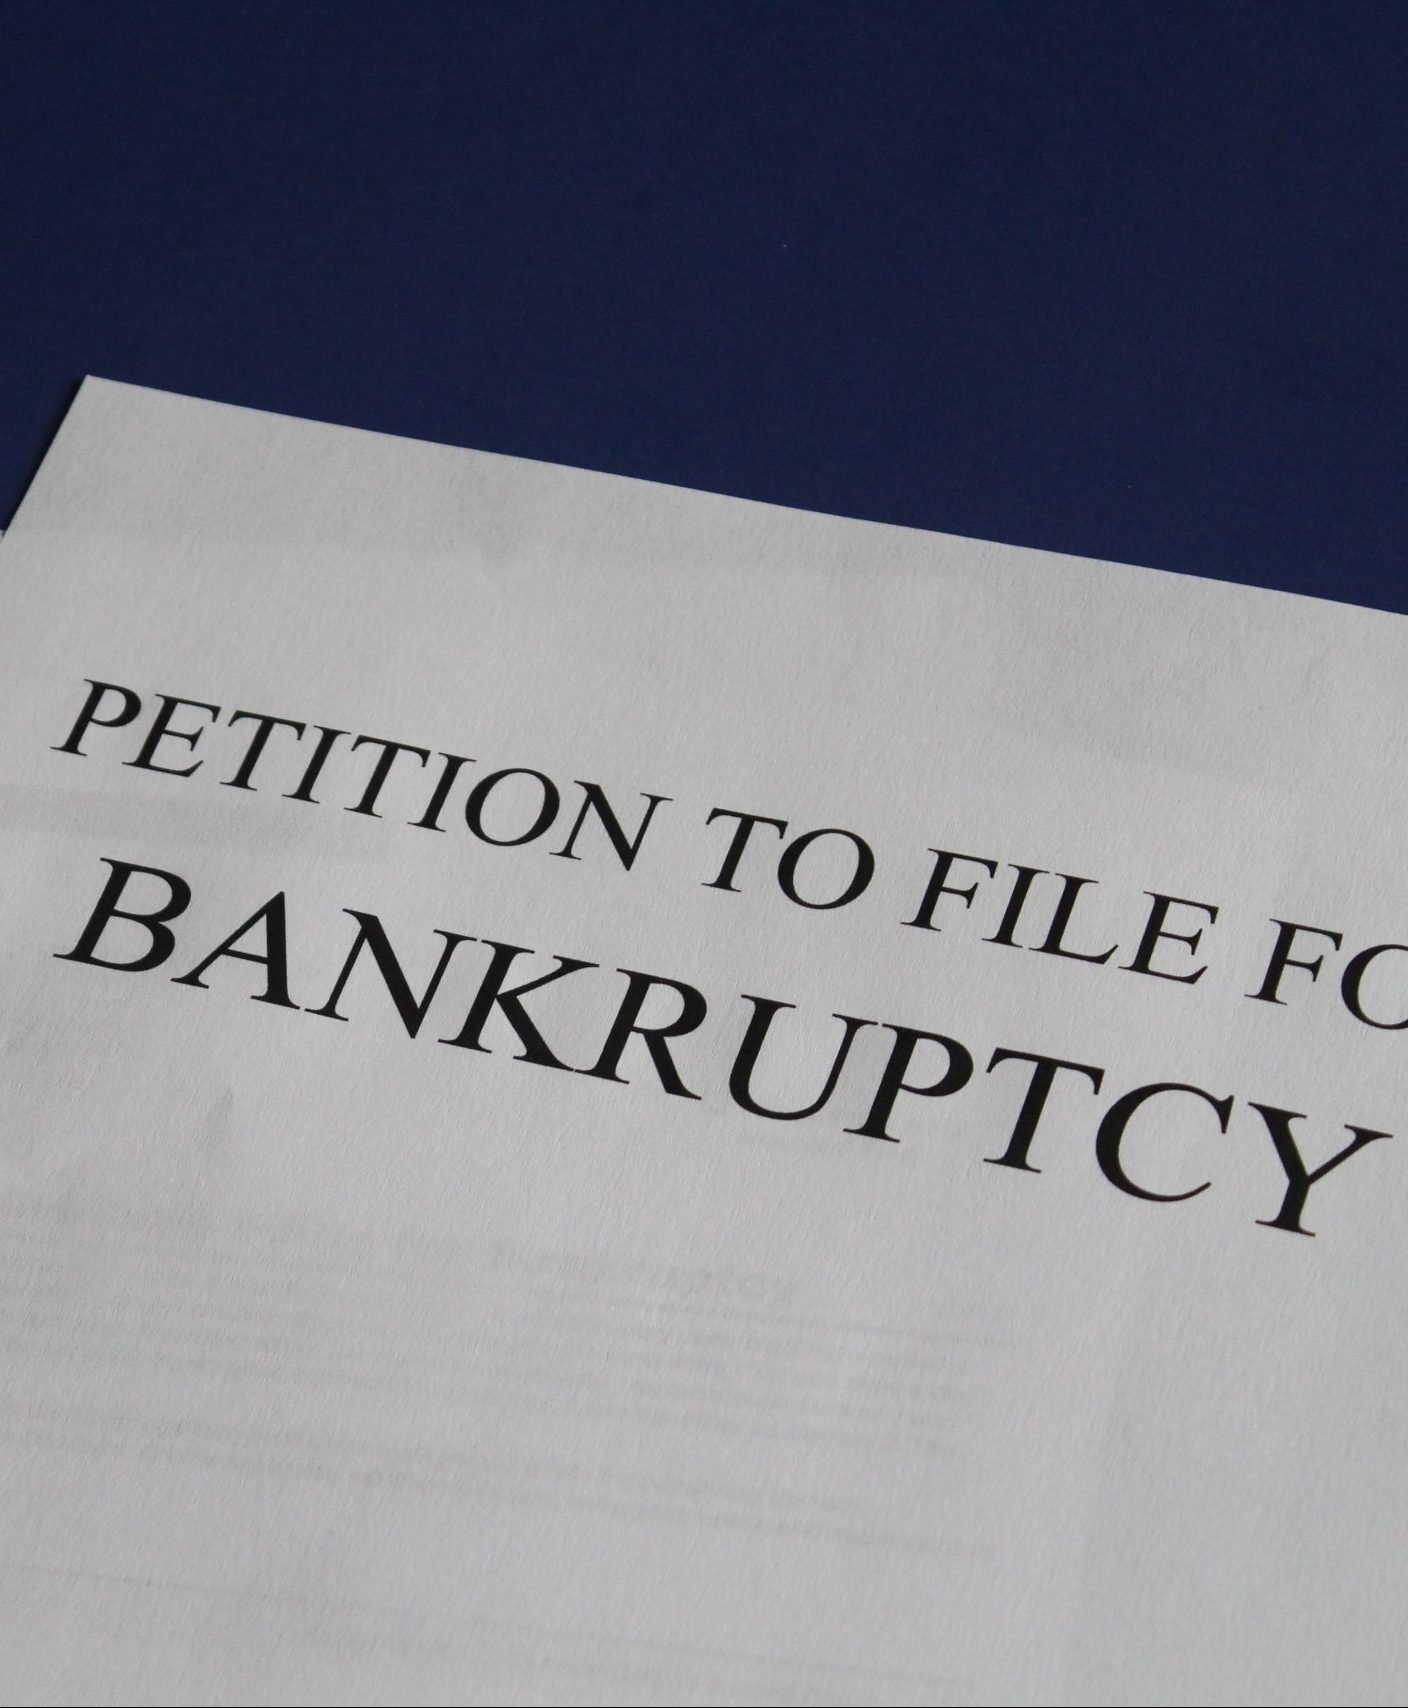 bankruptcy-legal-document